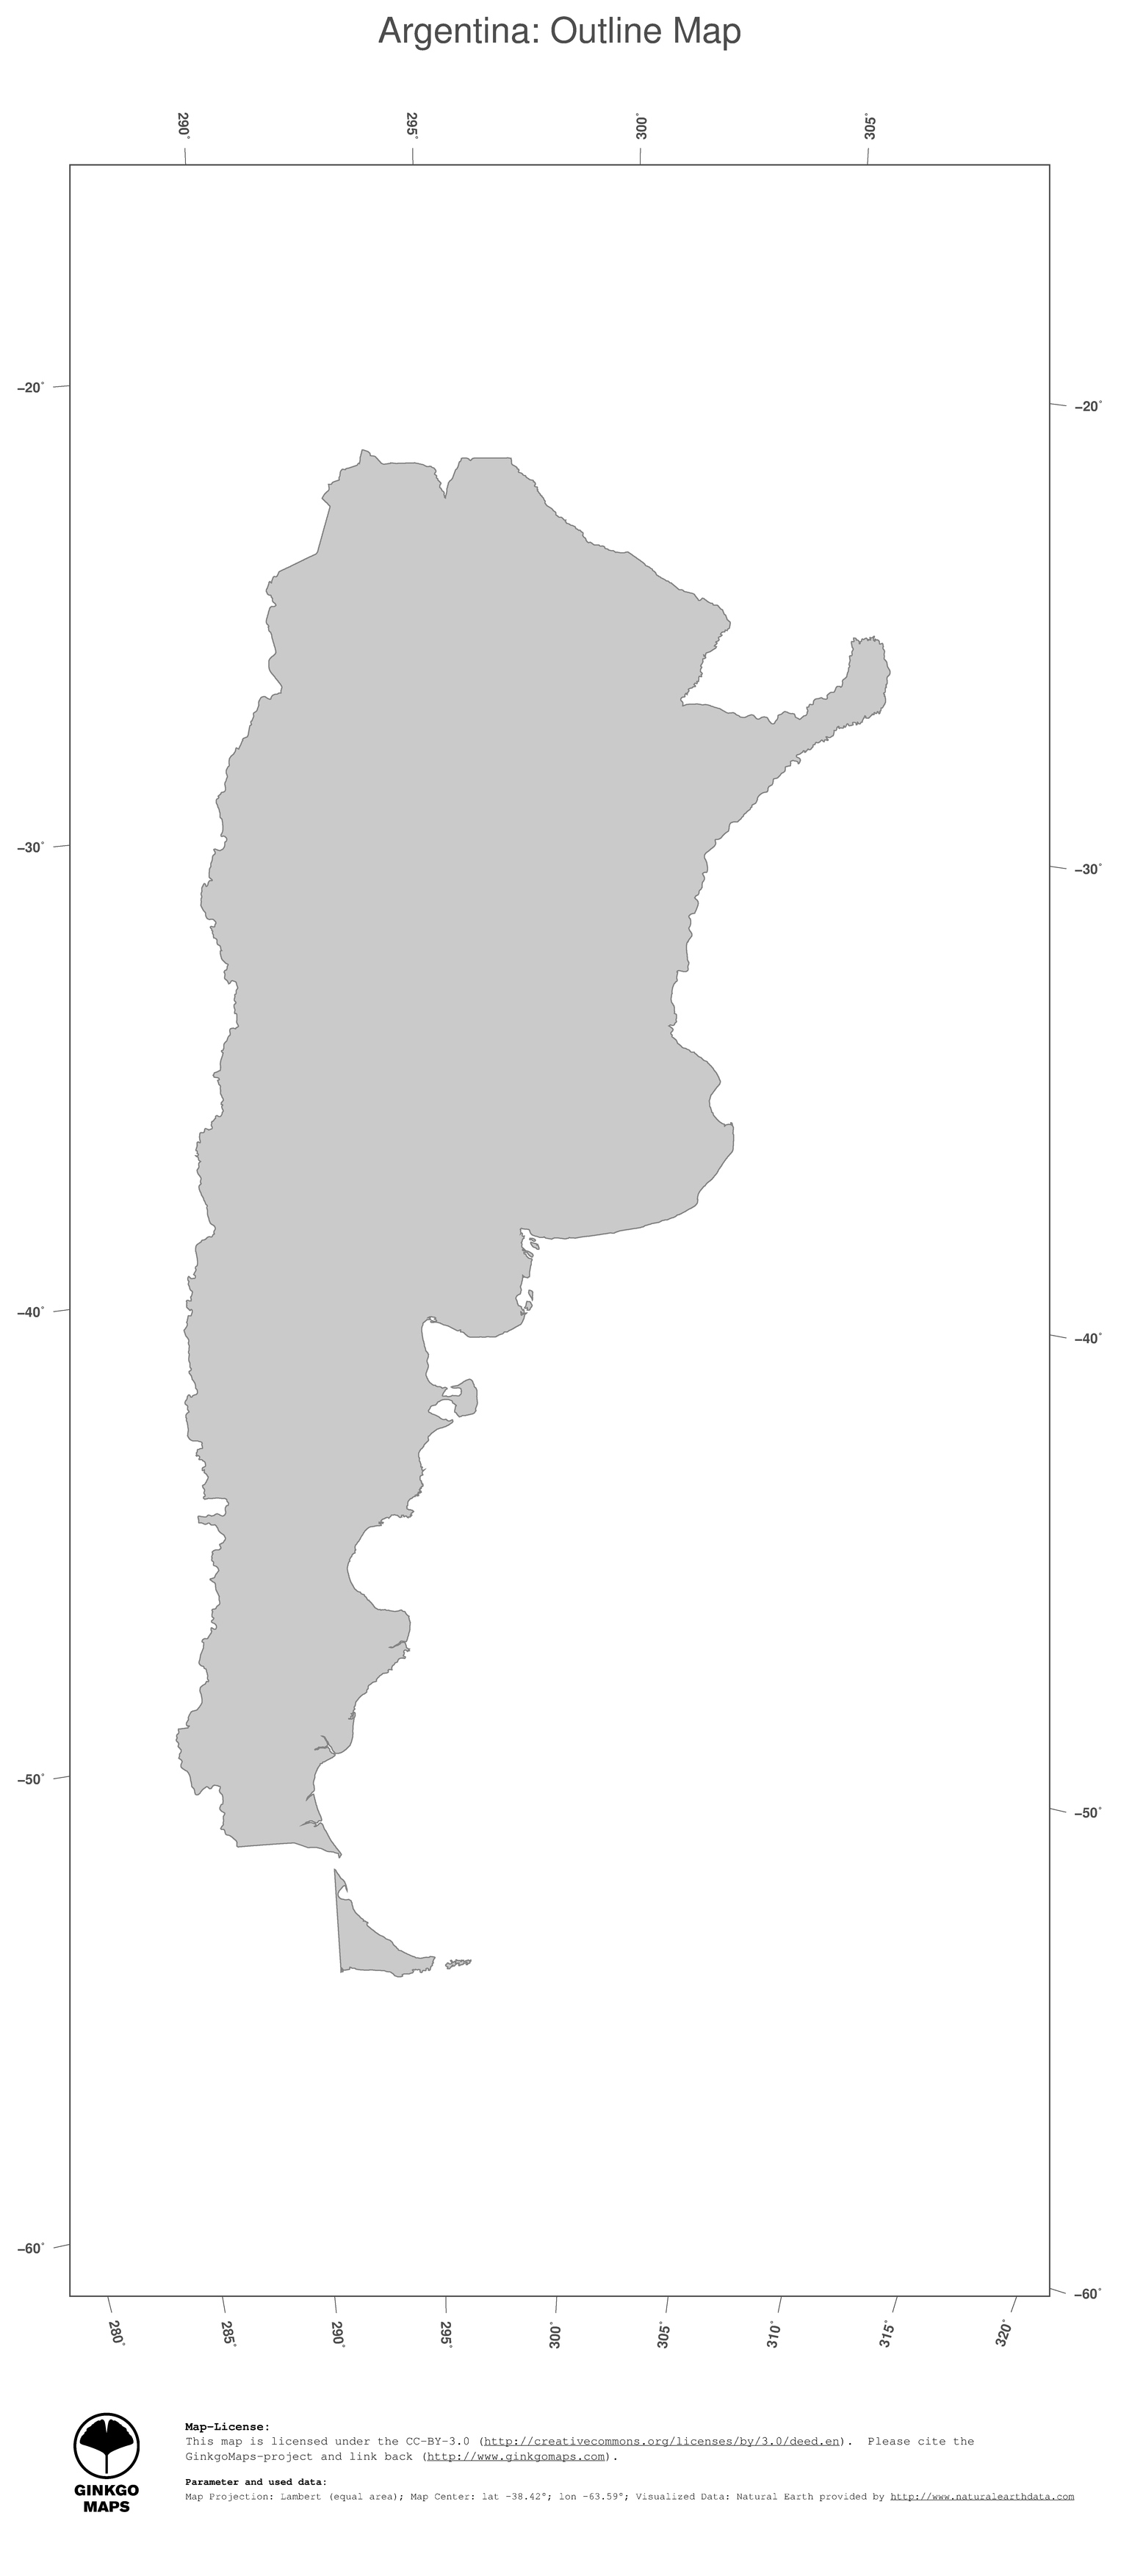 Map Argentina GinkgoMaps Continent South America Region Argentina - Argentina map outline